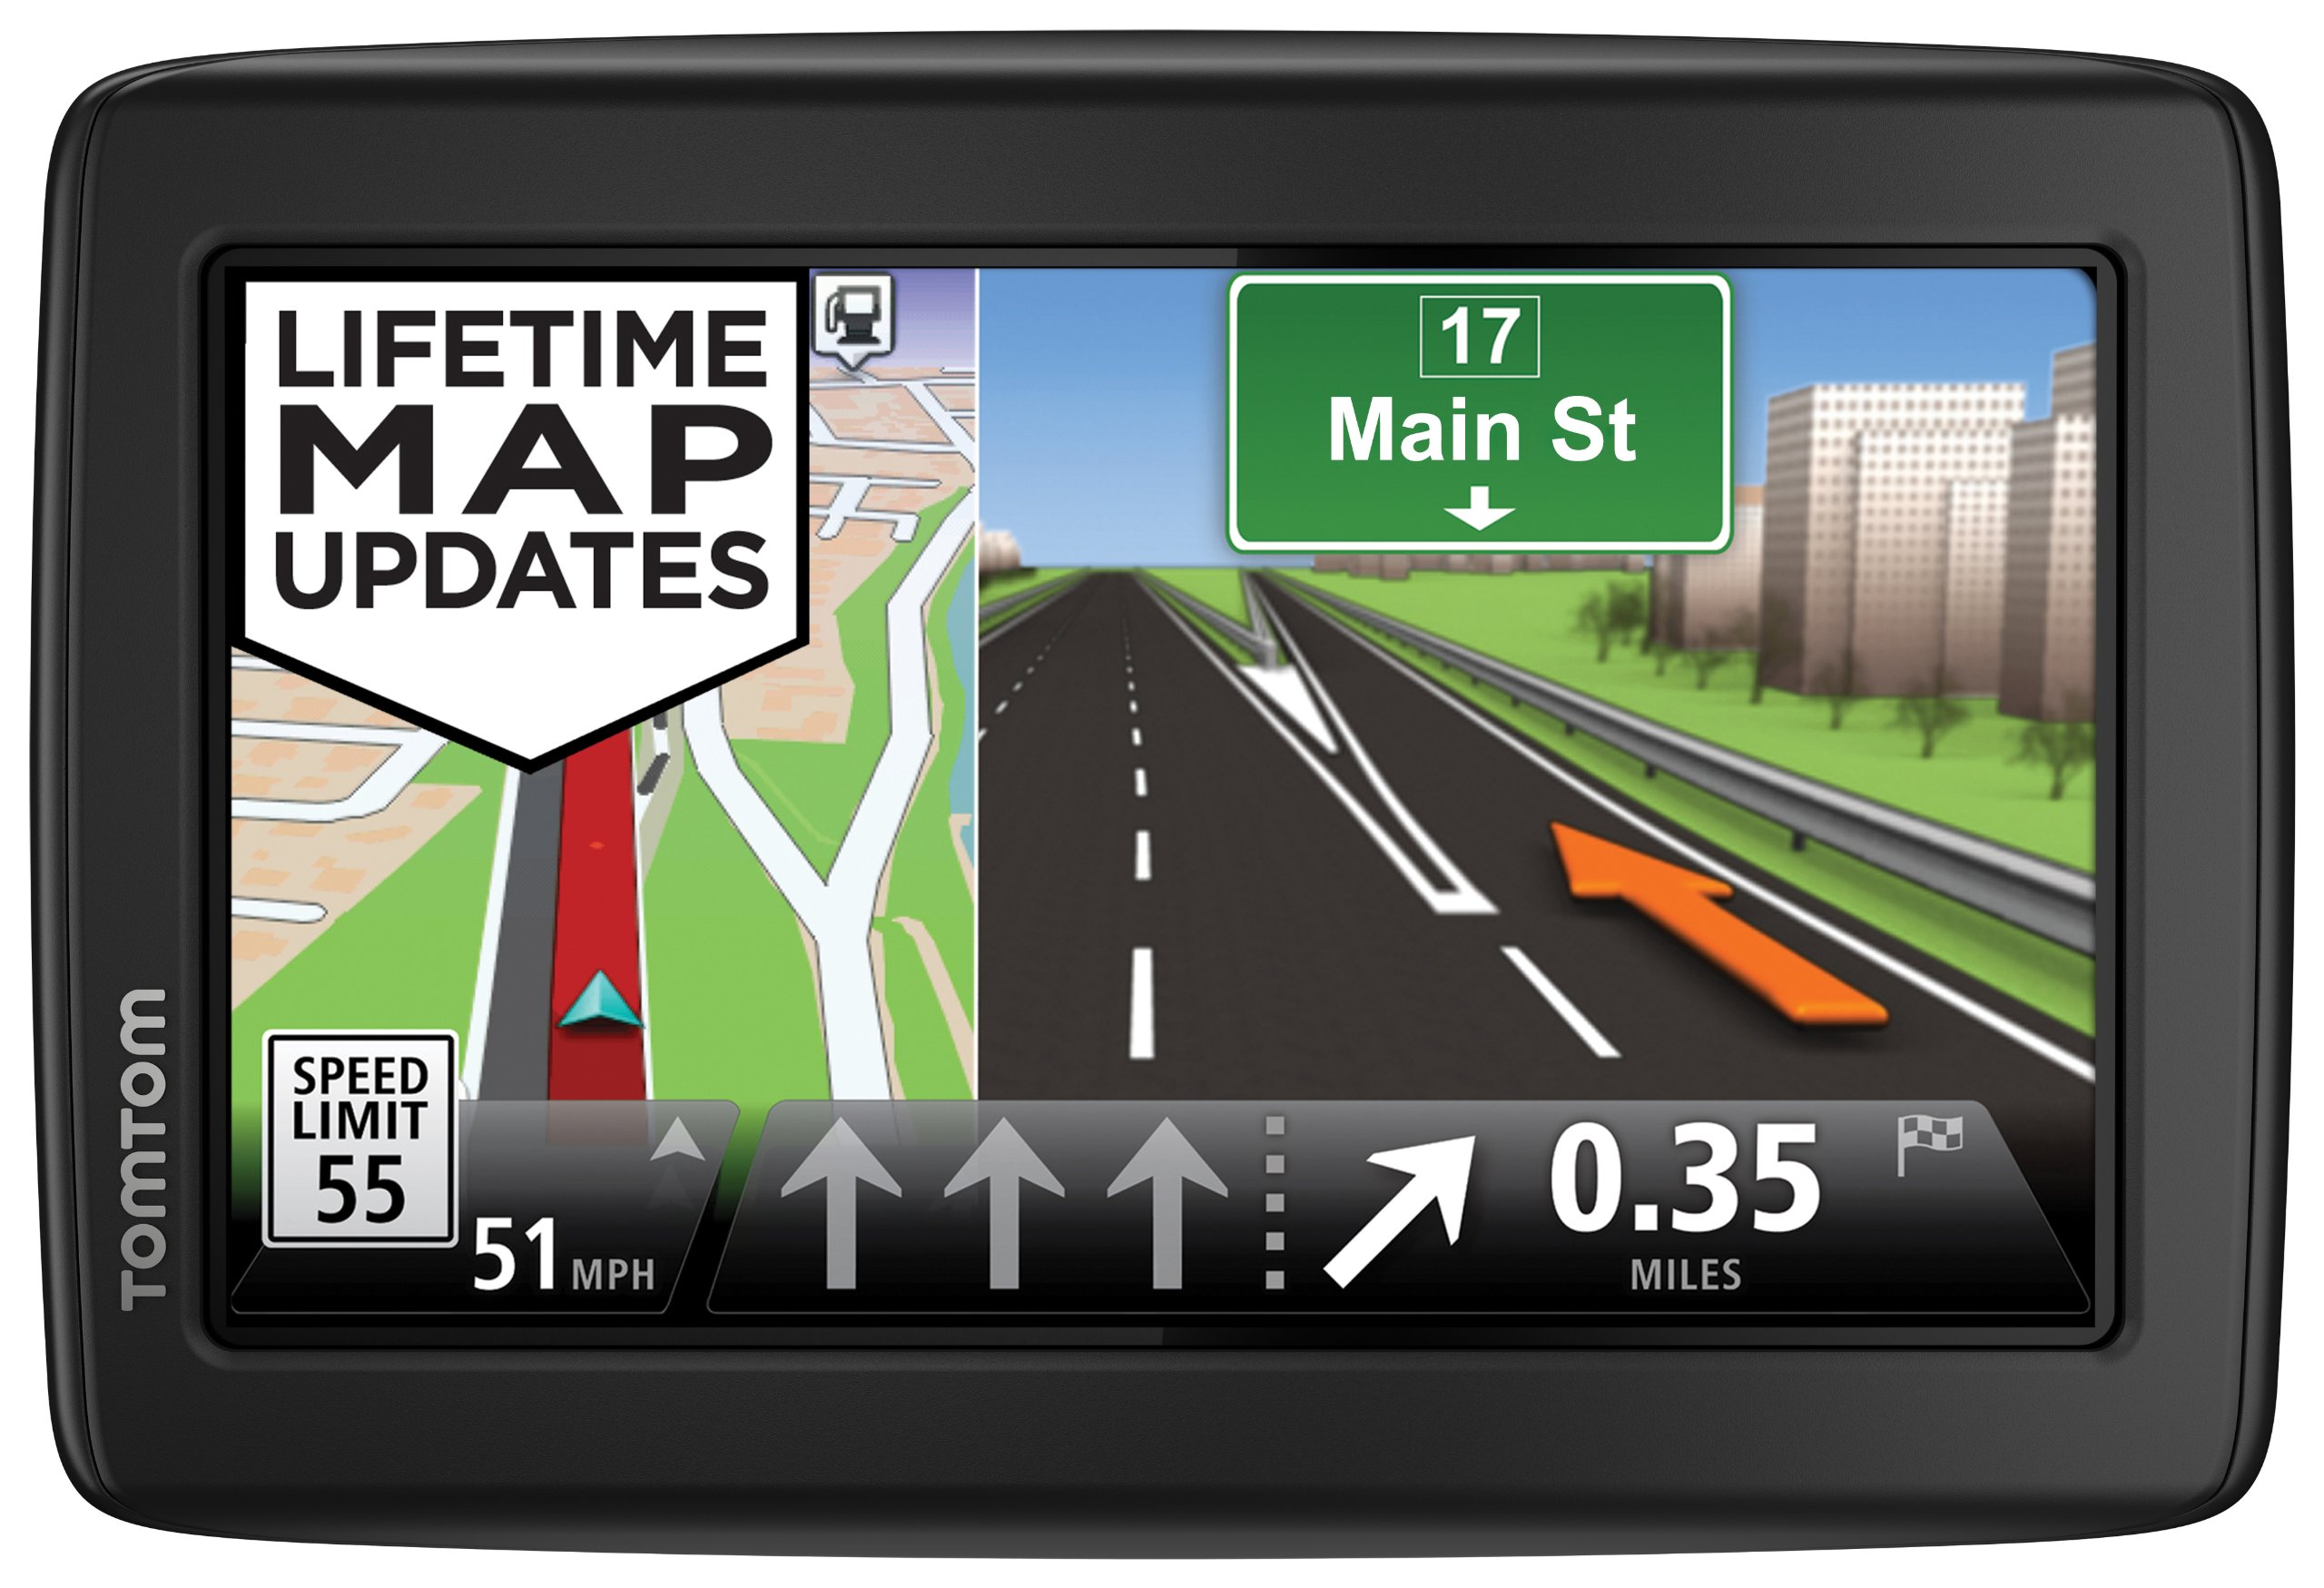 TomTom Incorporated 1EN5.019.13 TomTom VIA 1505M World Traveler Edition 5-Inch Portable Touchscreen Car GPS Navigation Device - Lifetime US, Canada, Mexico, and Europe Maps by TomTom